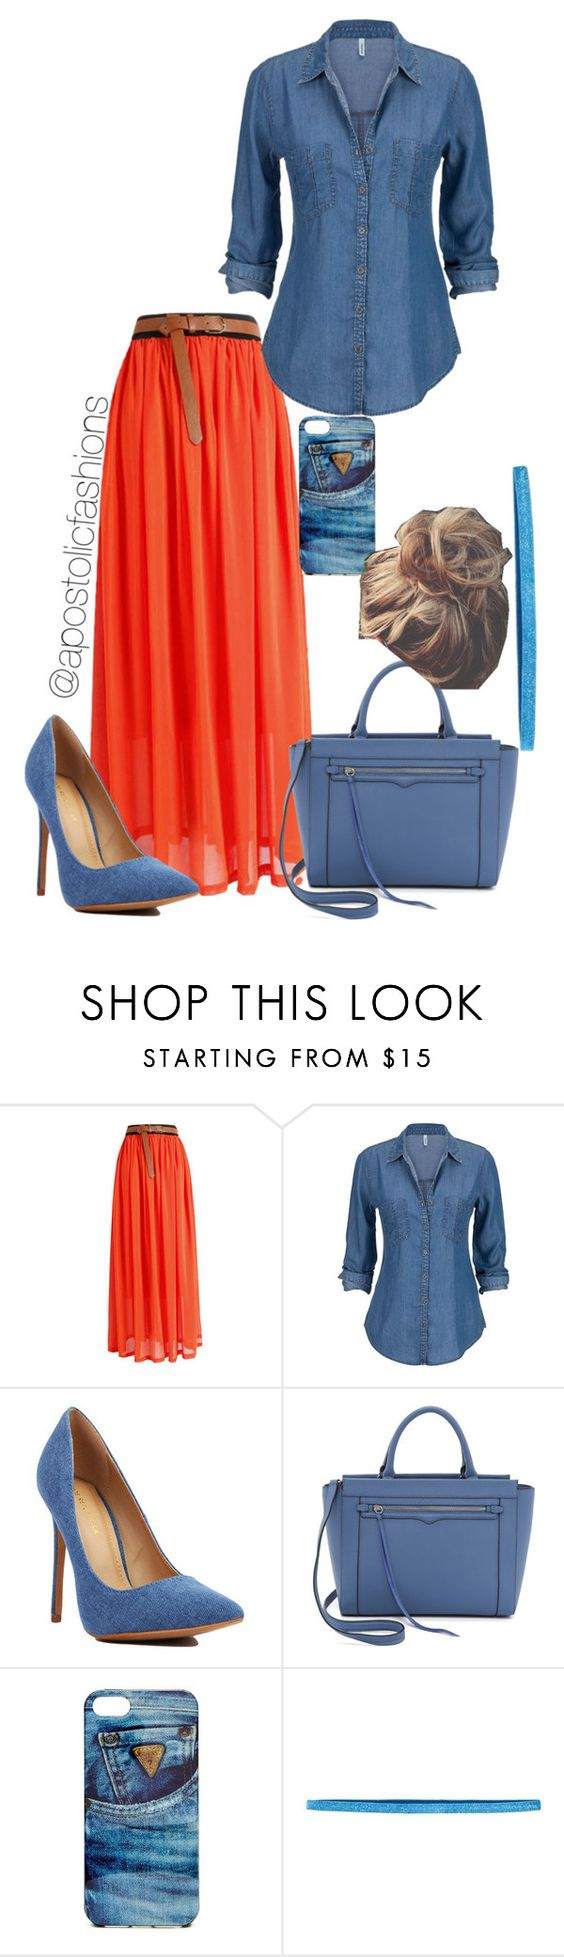 """""""Apostolic Fashions #858"""" by apostolicfashions on Polyvore featuring Rebecca Minkoff, GUESS and Sparkly Soul"""